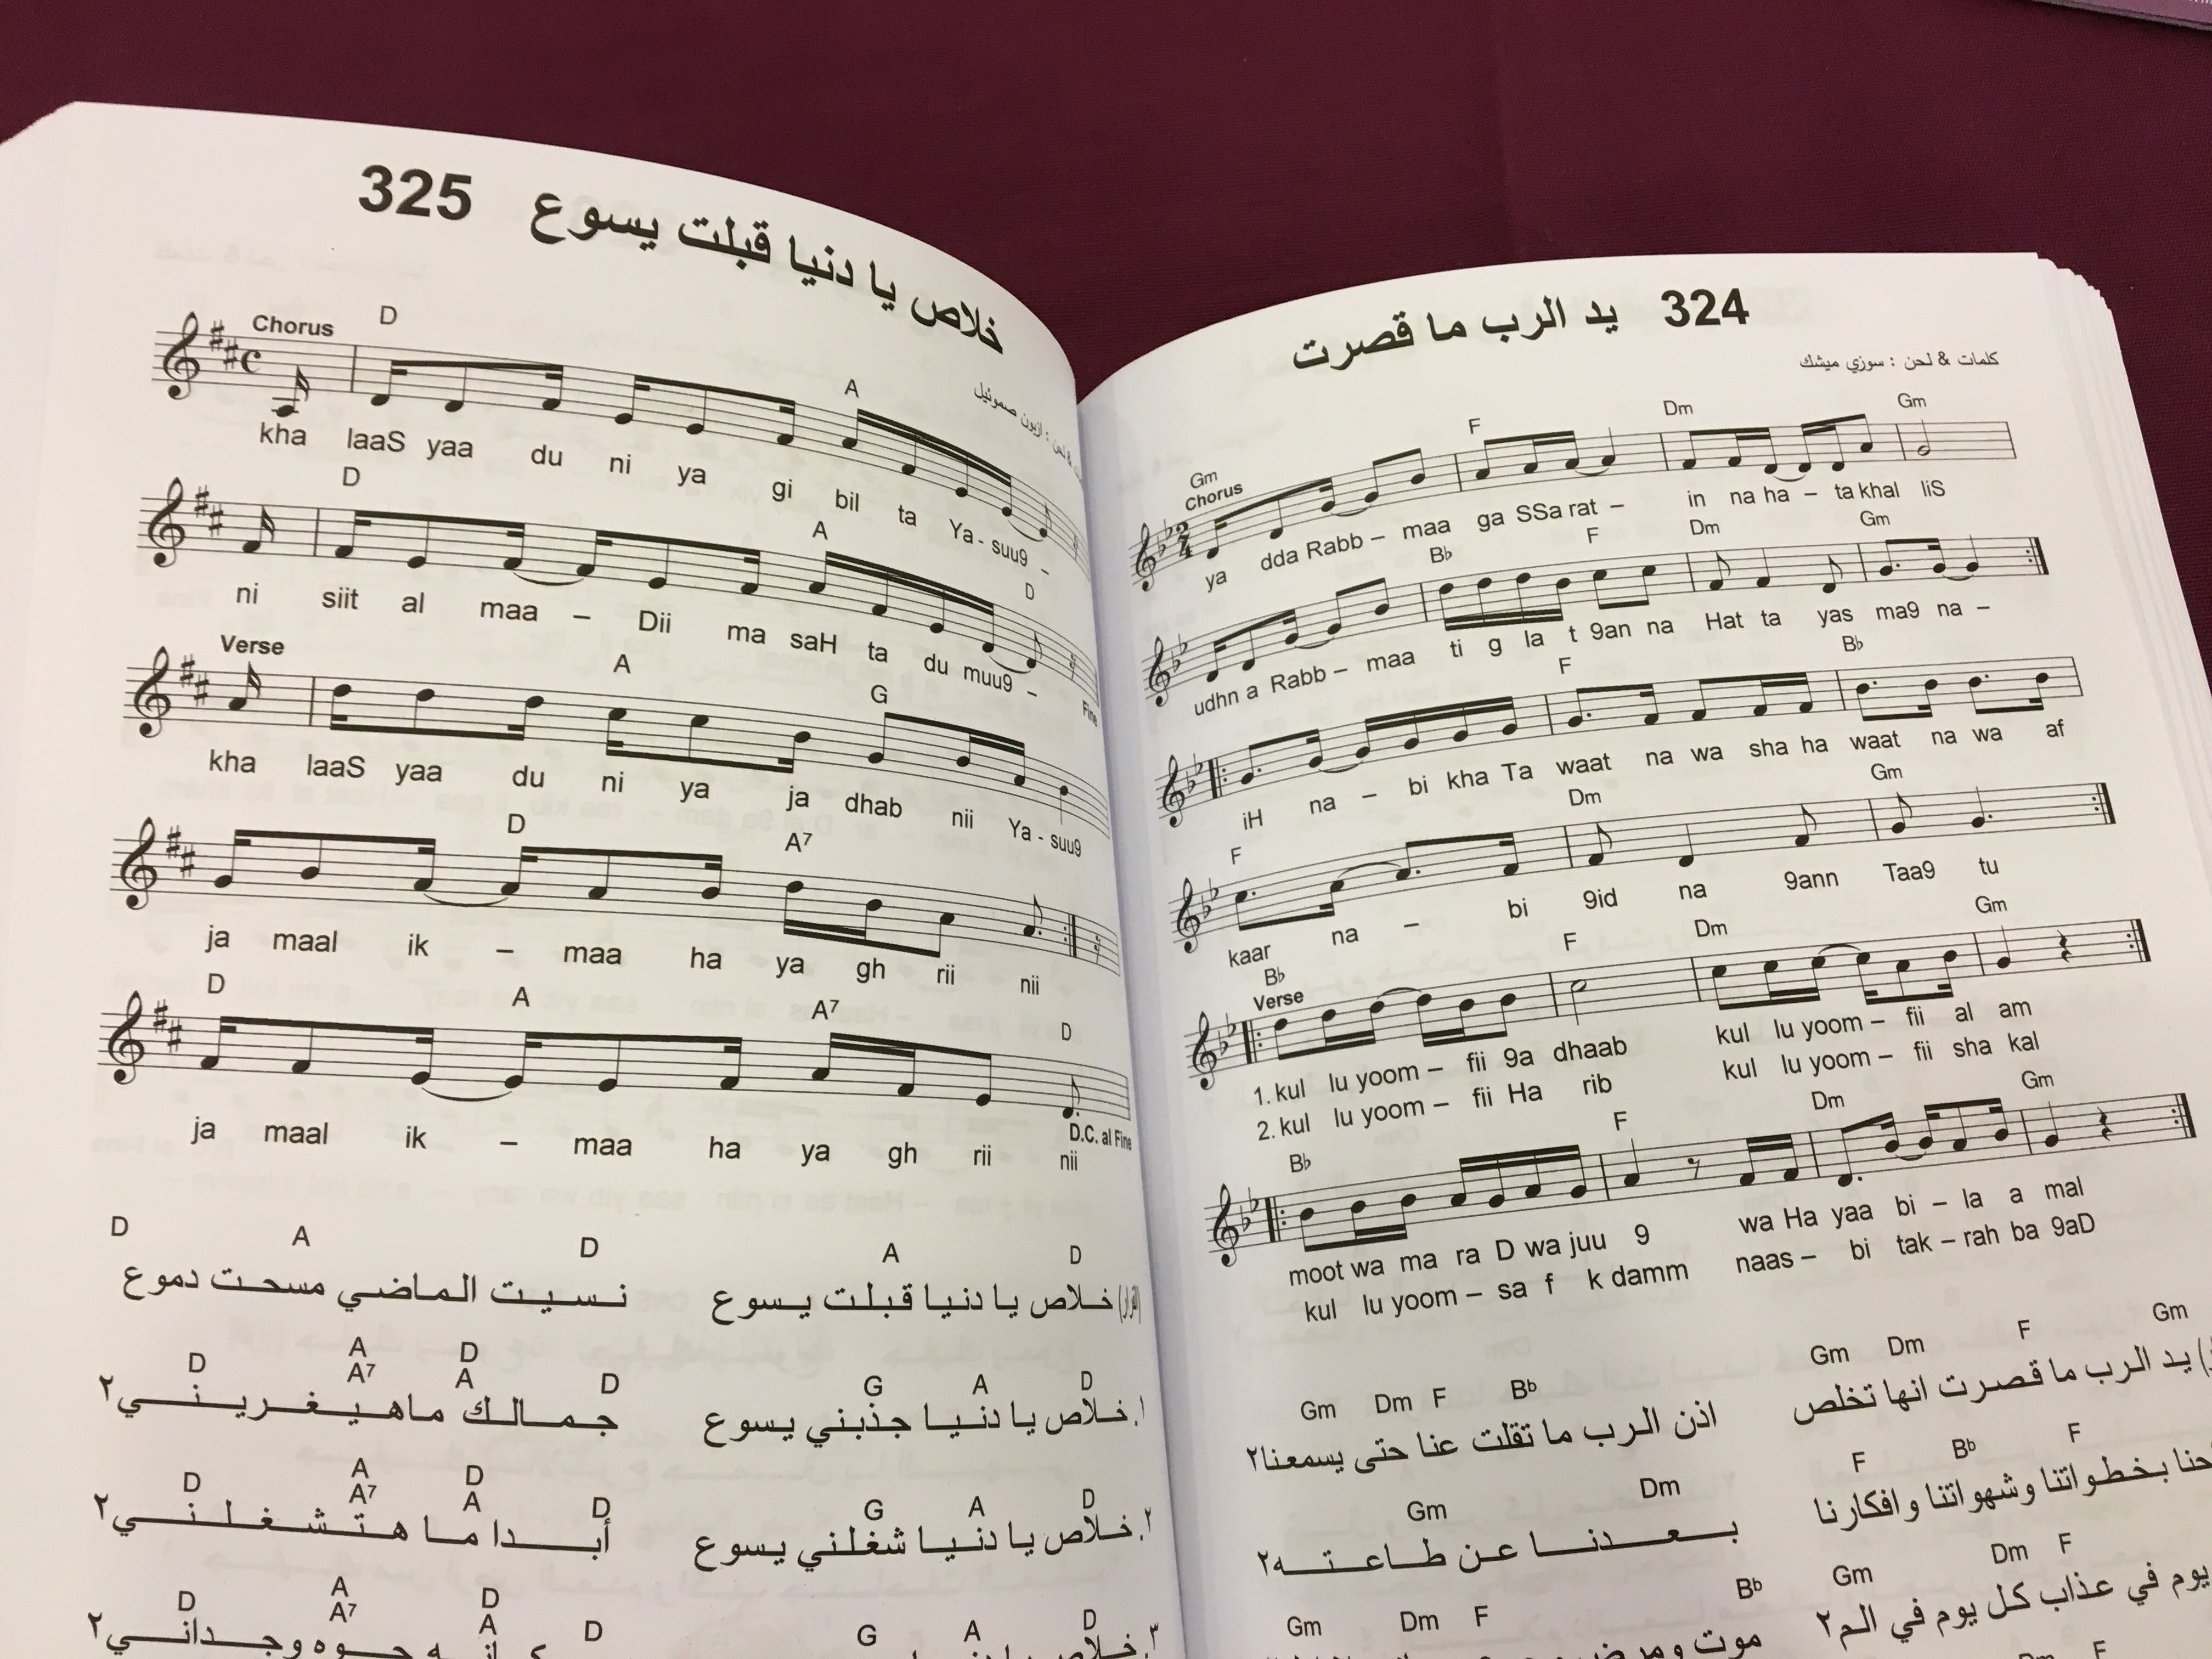 Historic hymnal brings joy to Sudanese Church